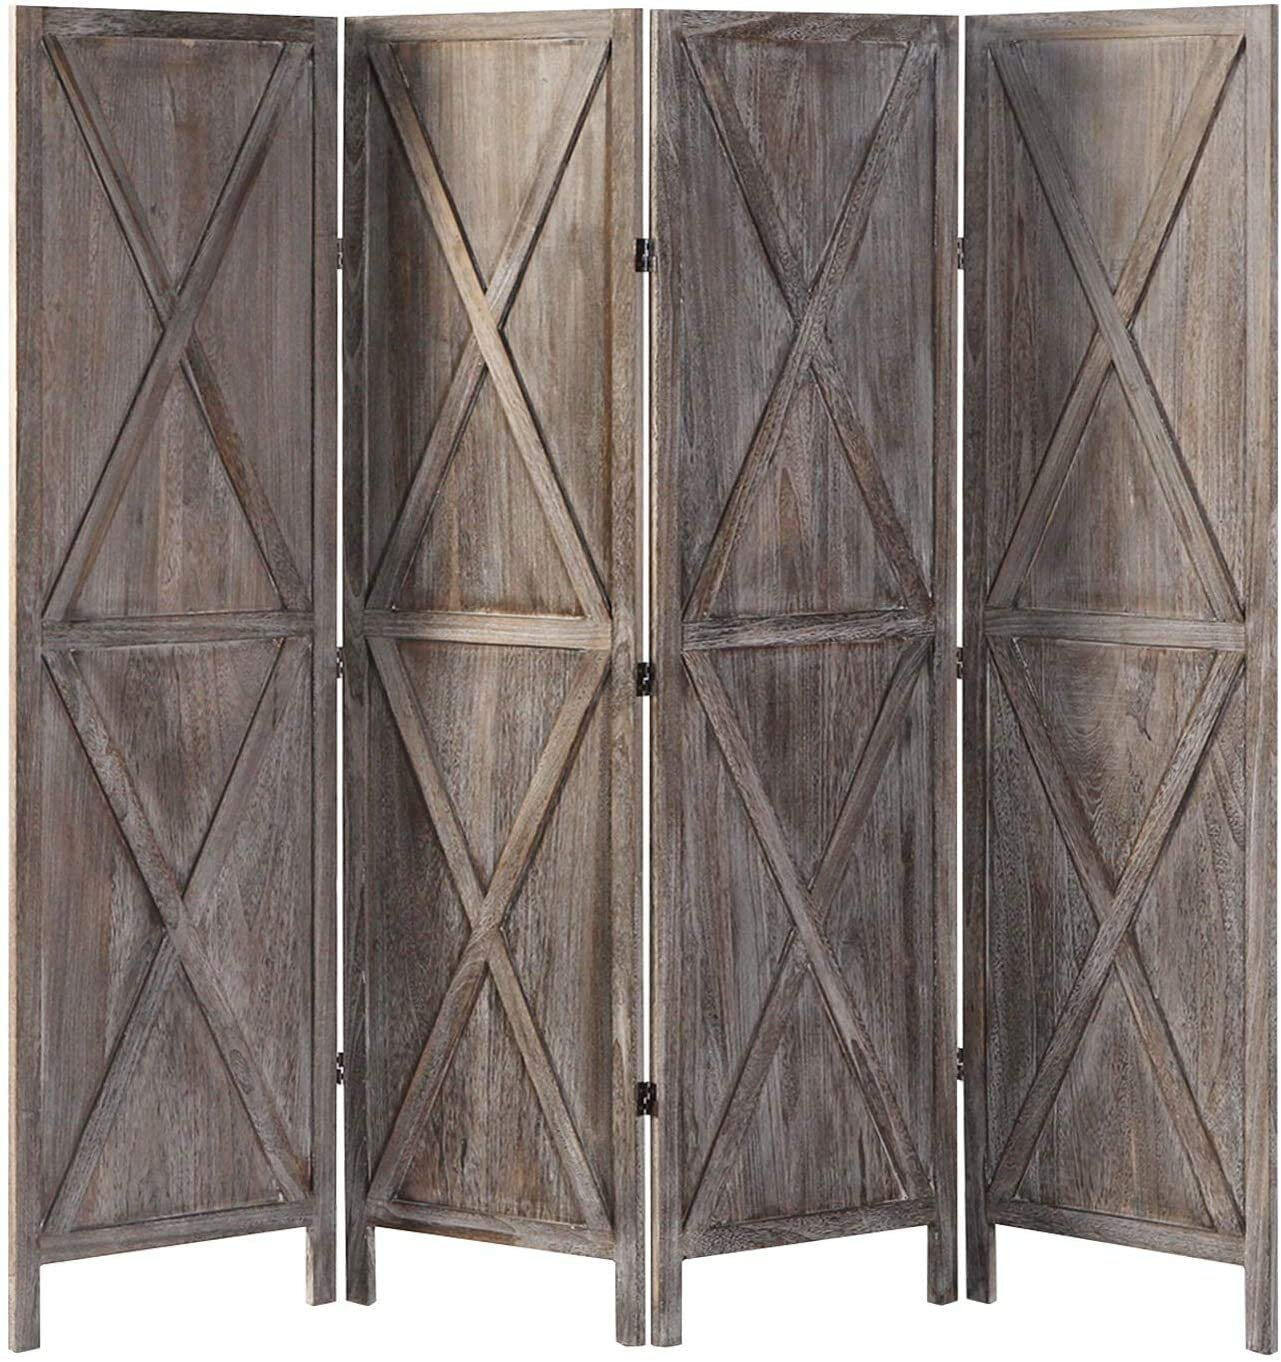 4 Panel Modern Farmhouse Room Dividers You Ll Love In 2021 Wayfair